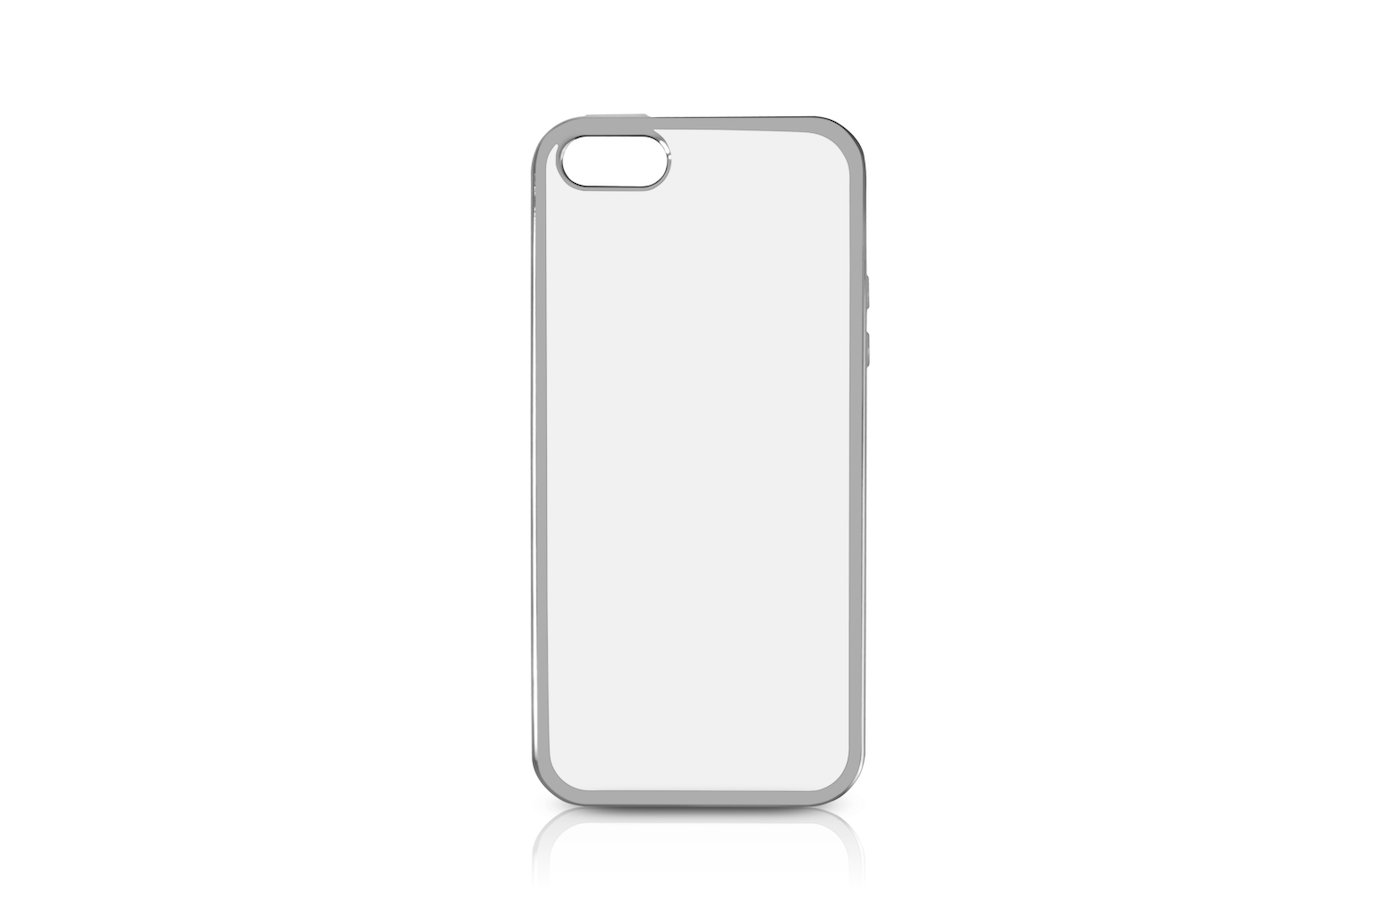 Чехол DF для iPhone 5/5S/SE (iCase-01) silver с рамкой